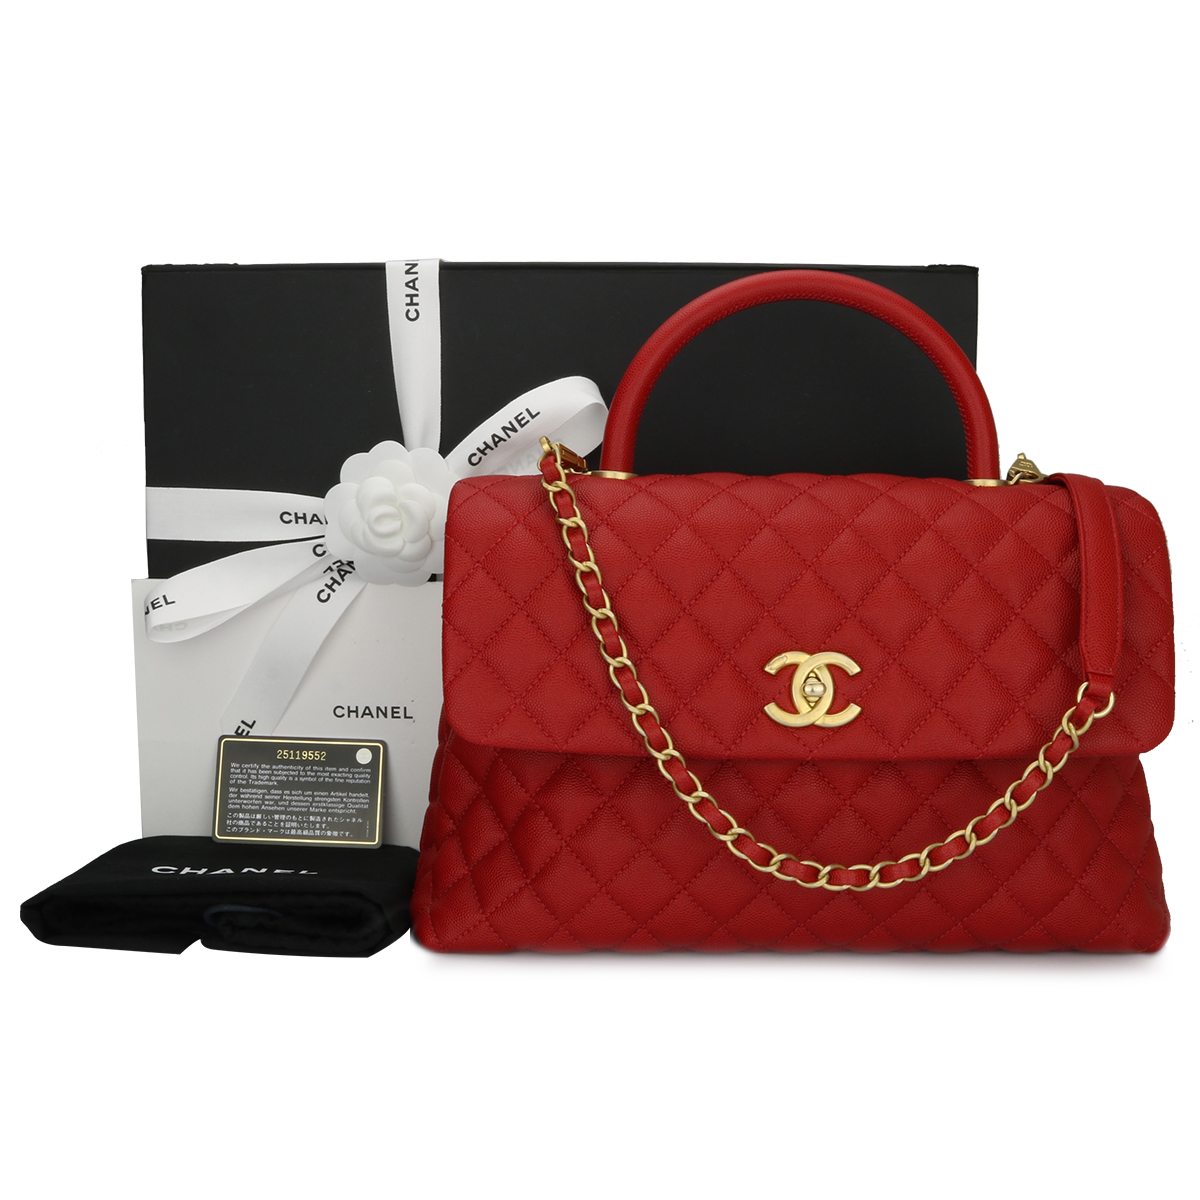 Red Chanel Bags